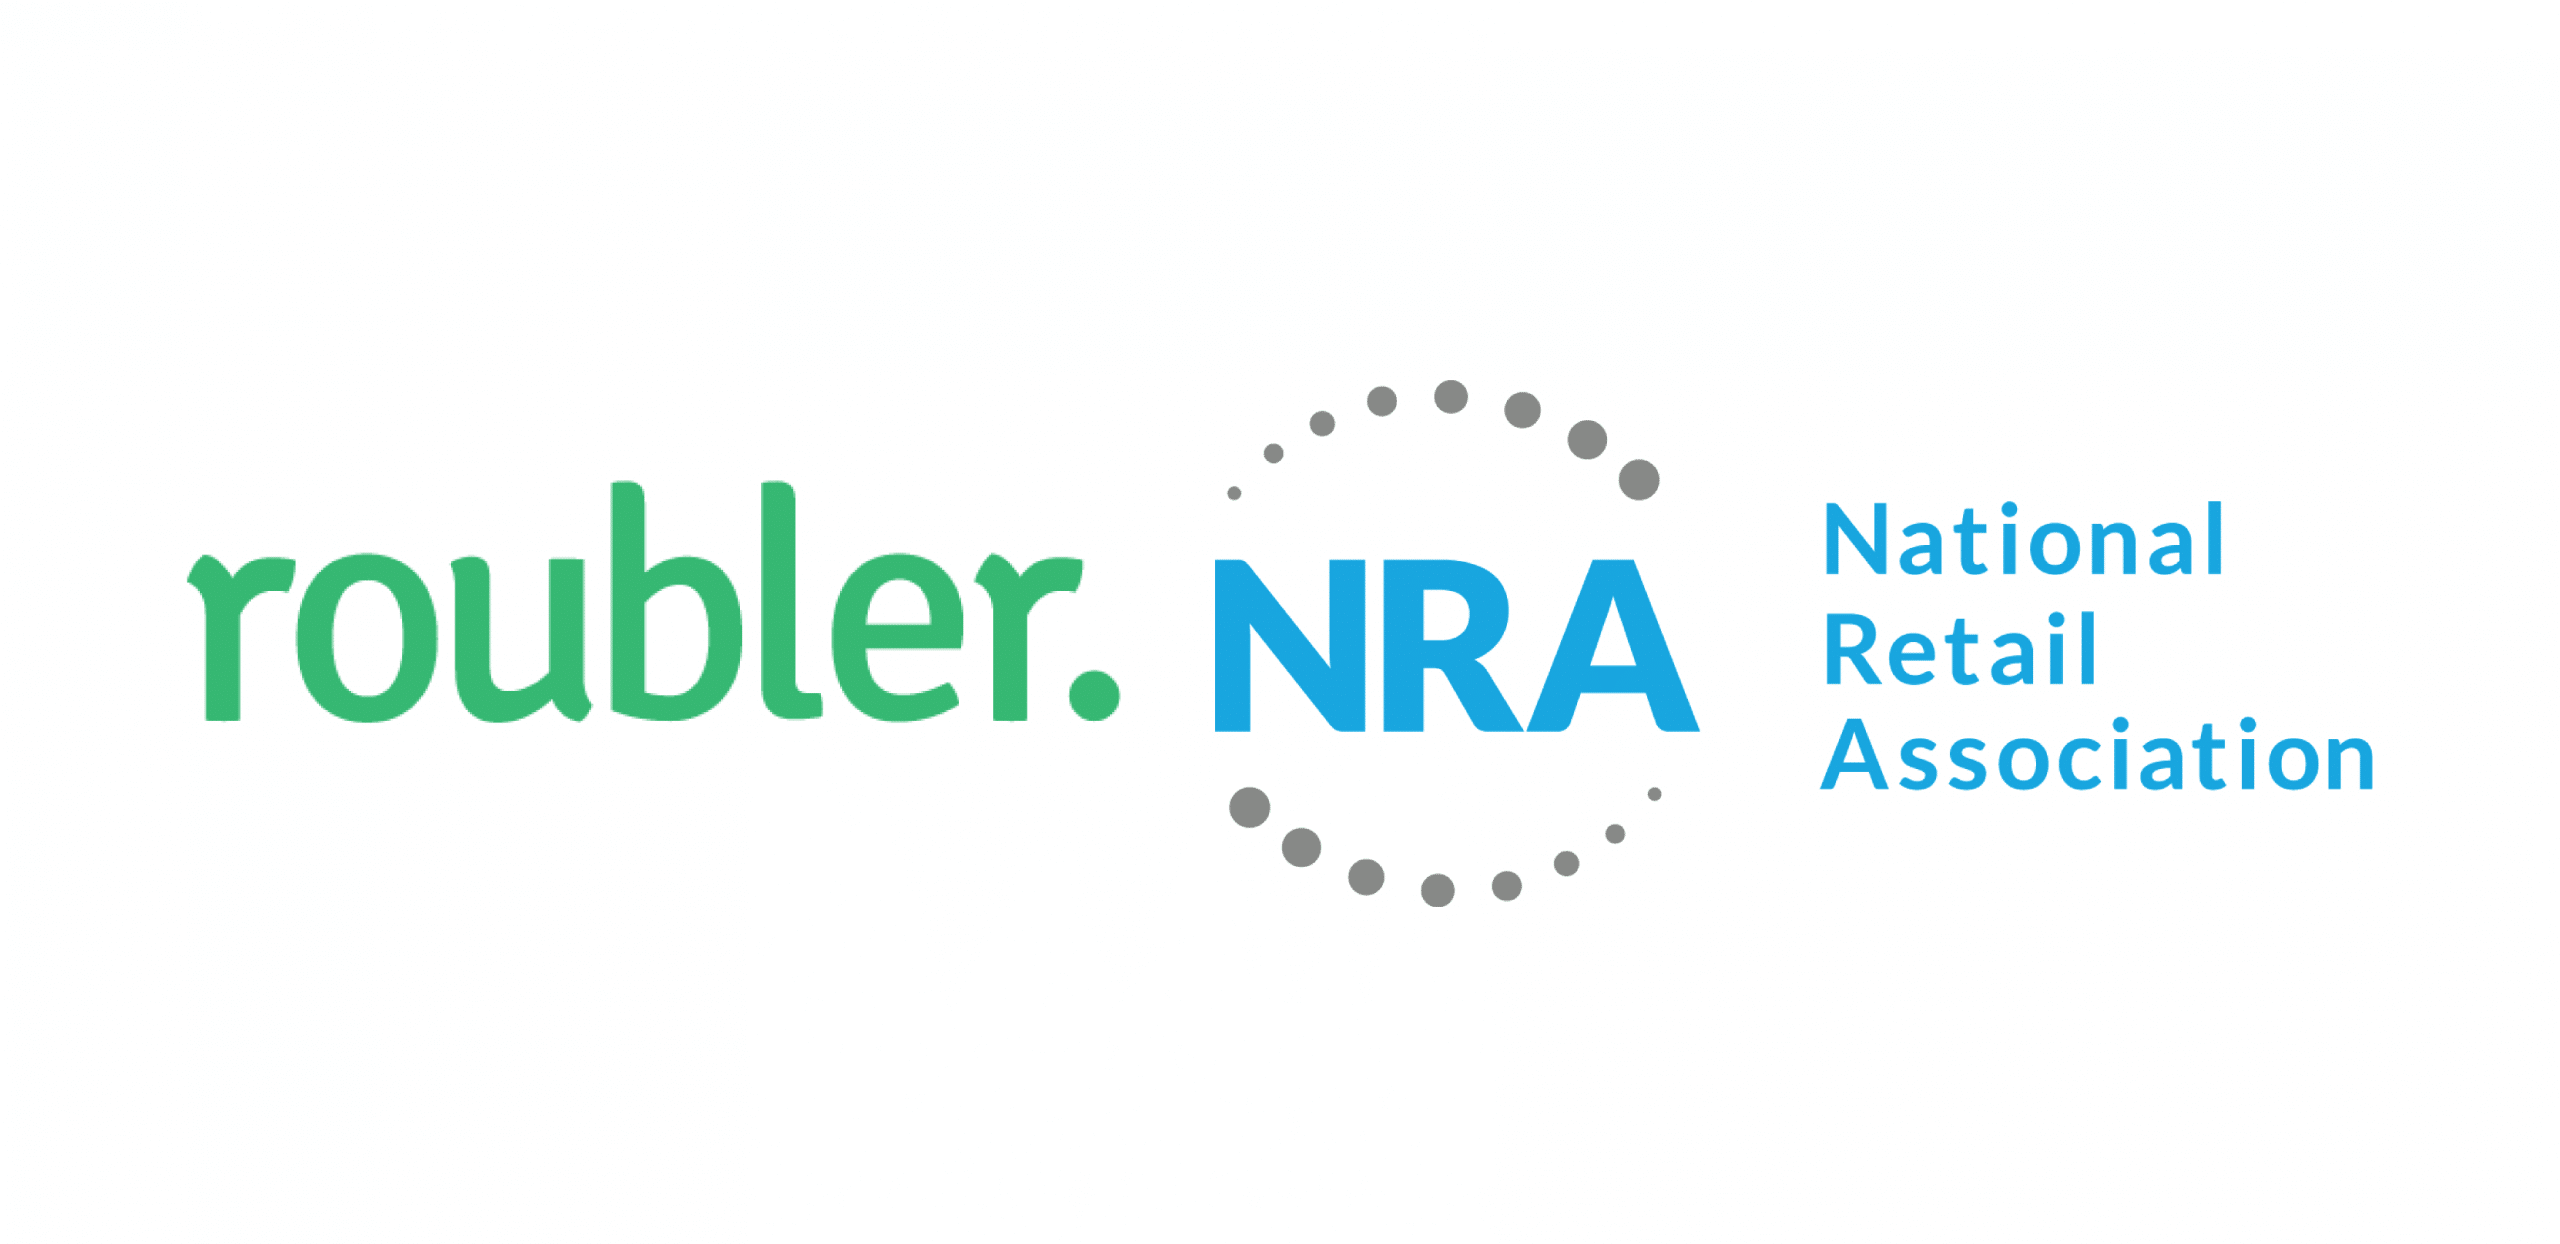 The NRA and Roubler partnership